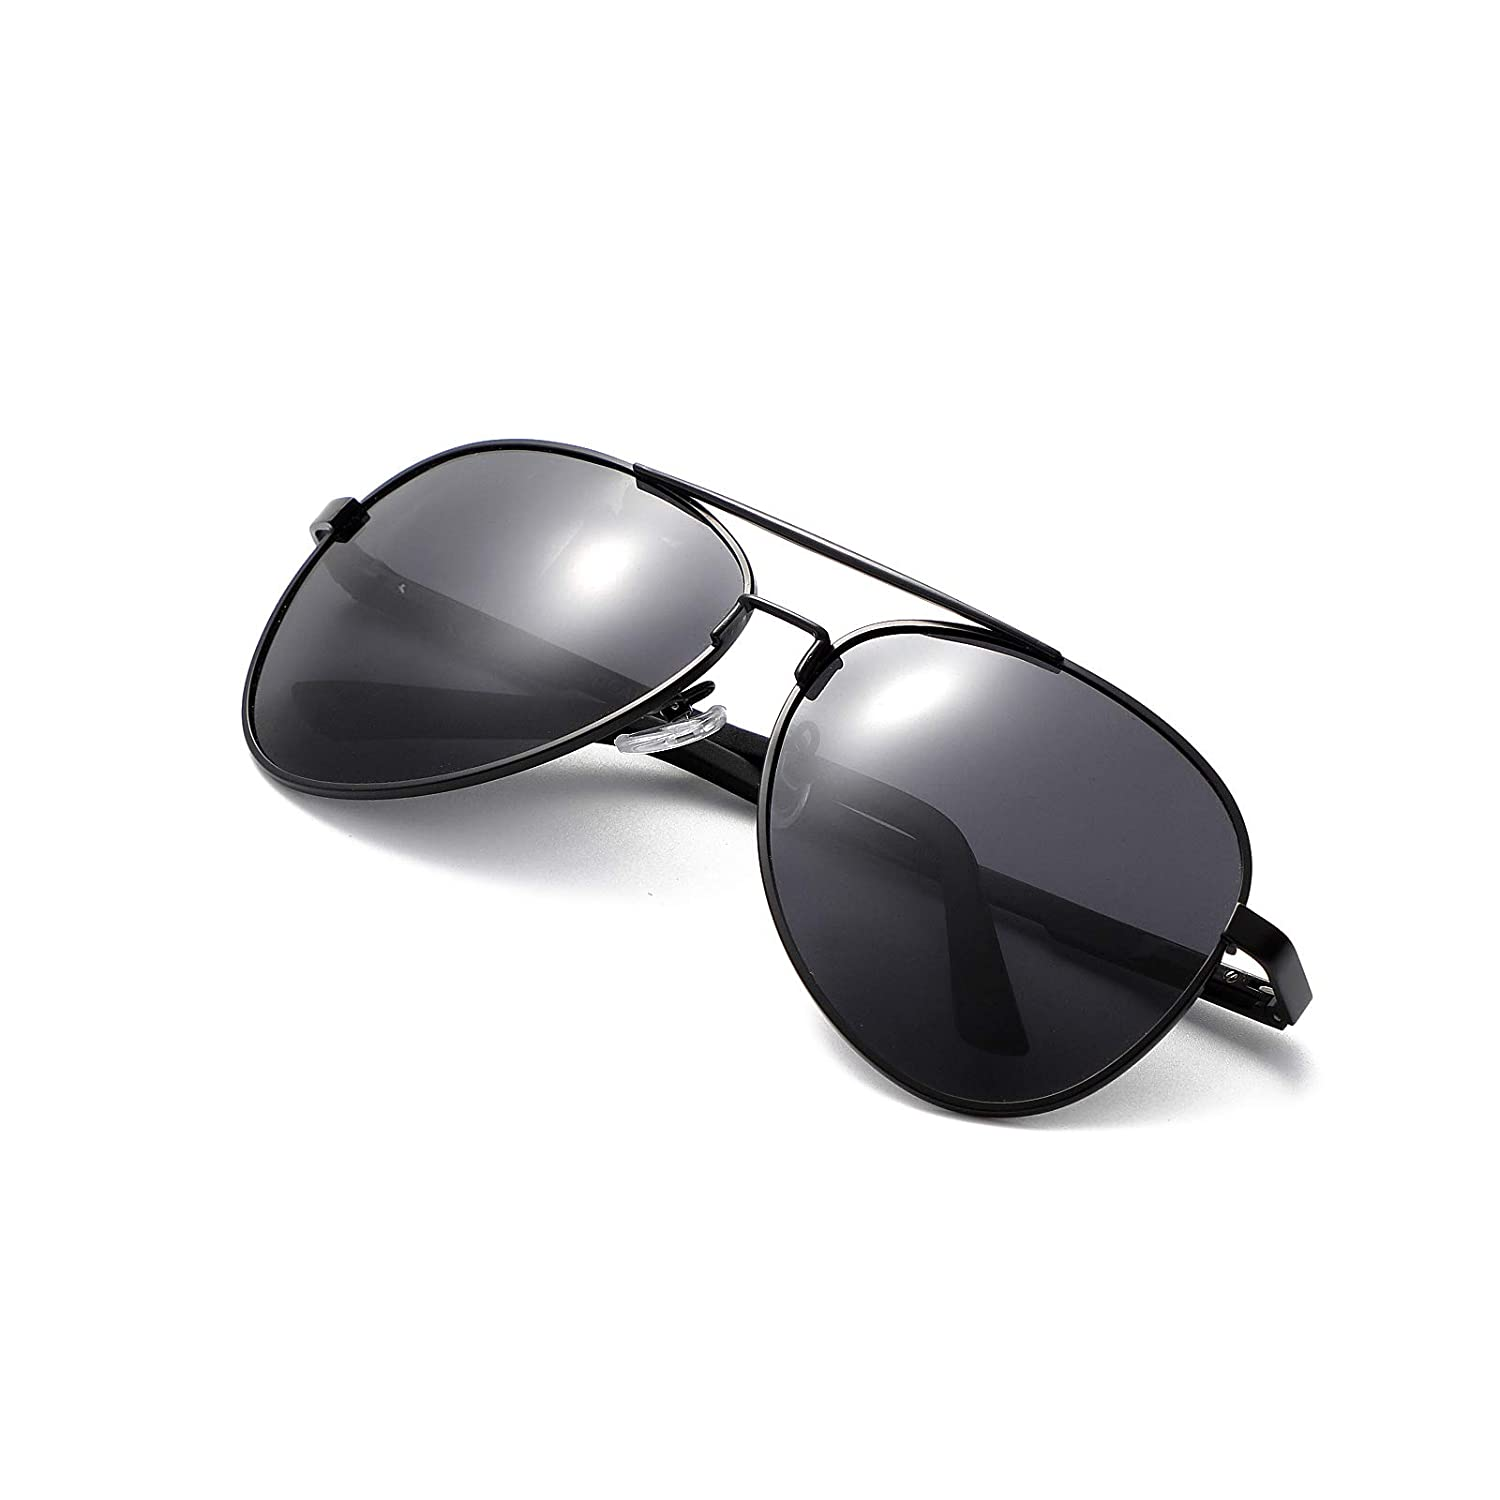 Blackgrey Aviator Polarized Sunglasses for Men Women  UV400 Mirrored Glasses Shades 60mm